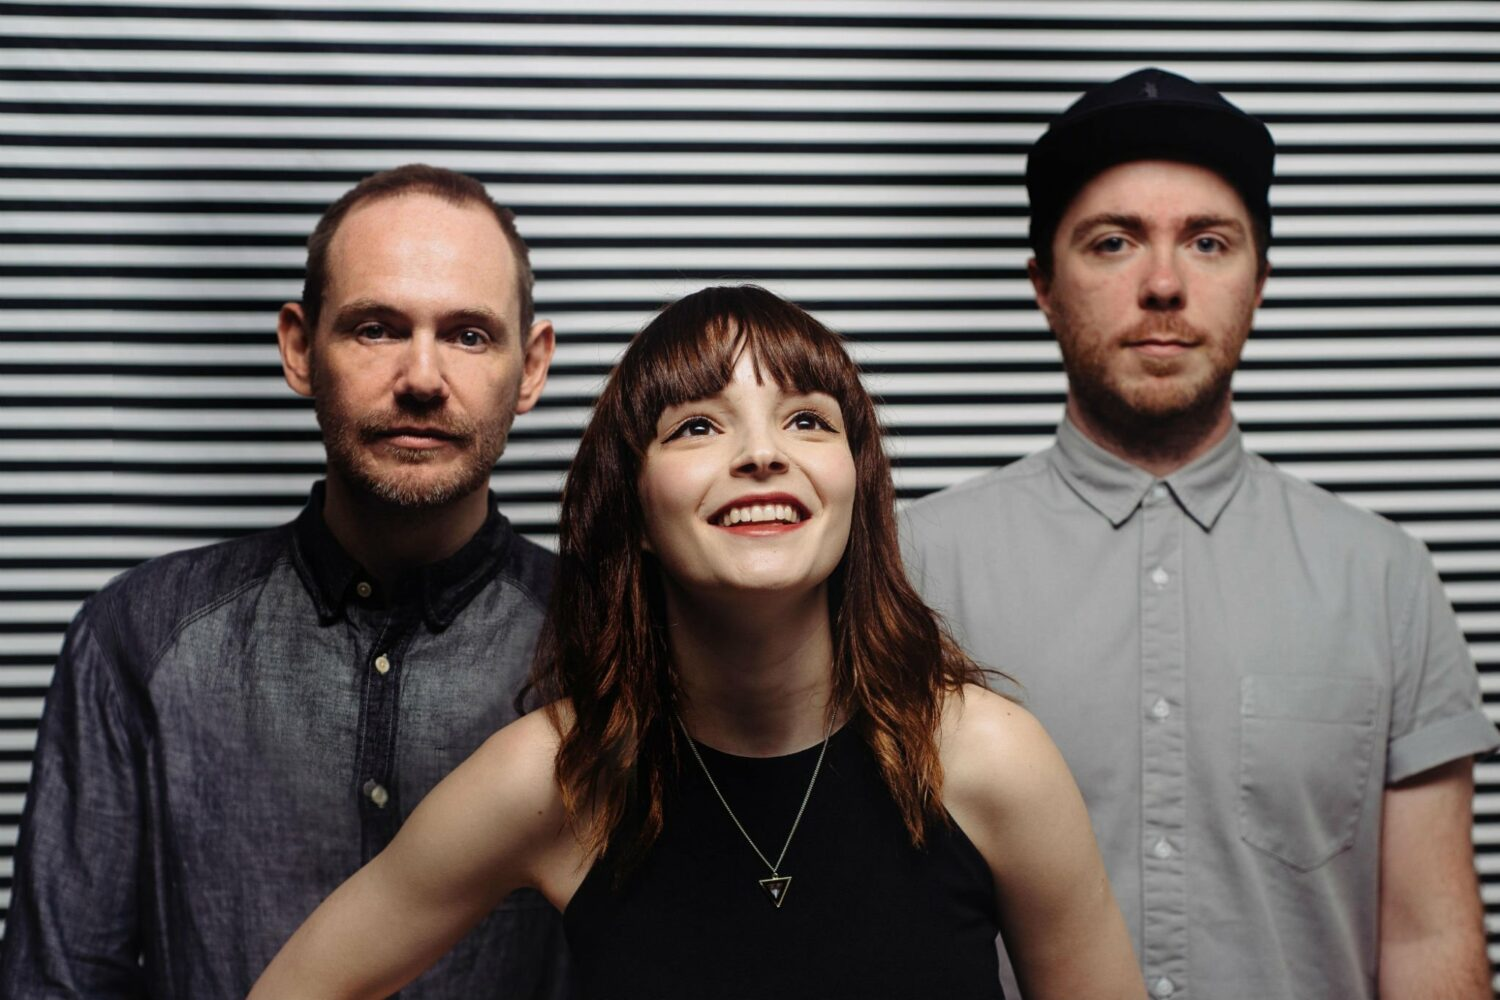 ​New issue of DIY out now, feat. Chvrches, The Dead Weather, Spring King & more